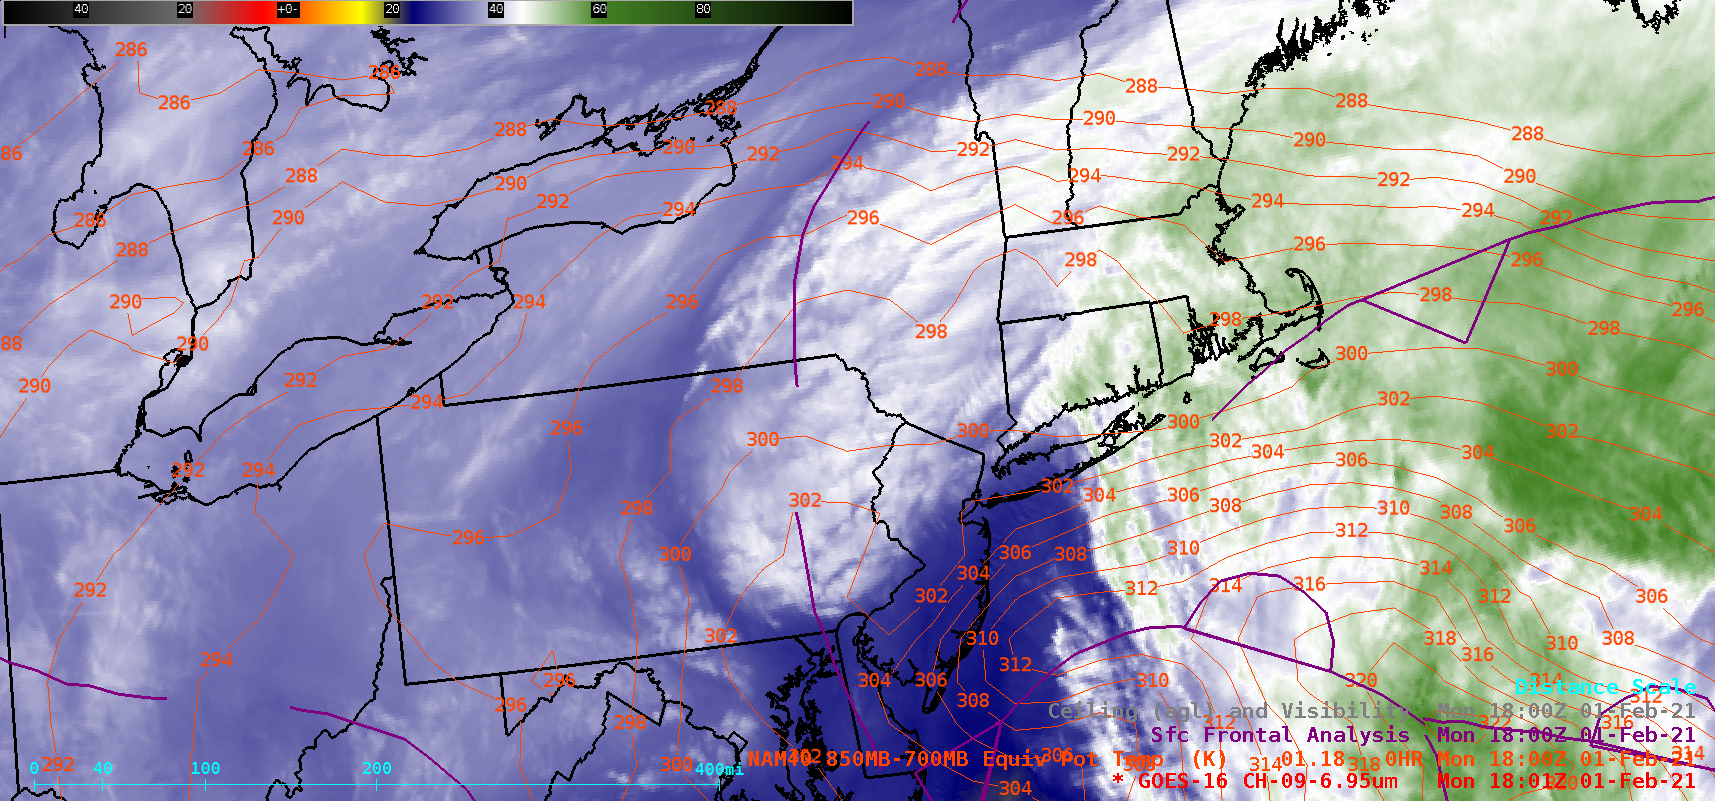 GOES-16 Mid-level Water Vapor (6.9 µm) images, with contours of 850-700 hPa layer Equivalent Potential Temperature (red) and Surface Fronts (purple) [click to play animation | MP4]